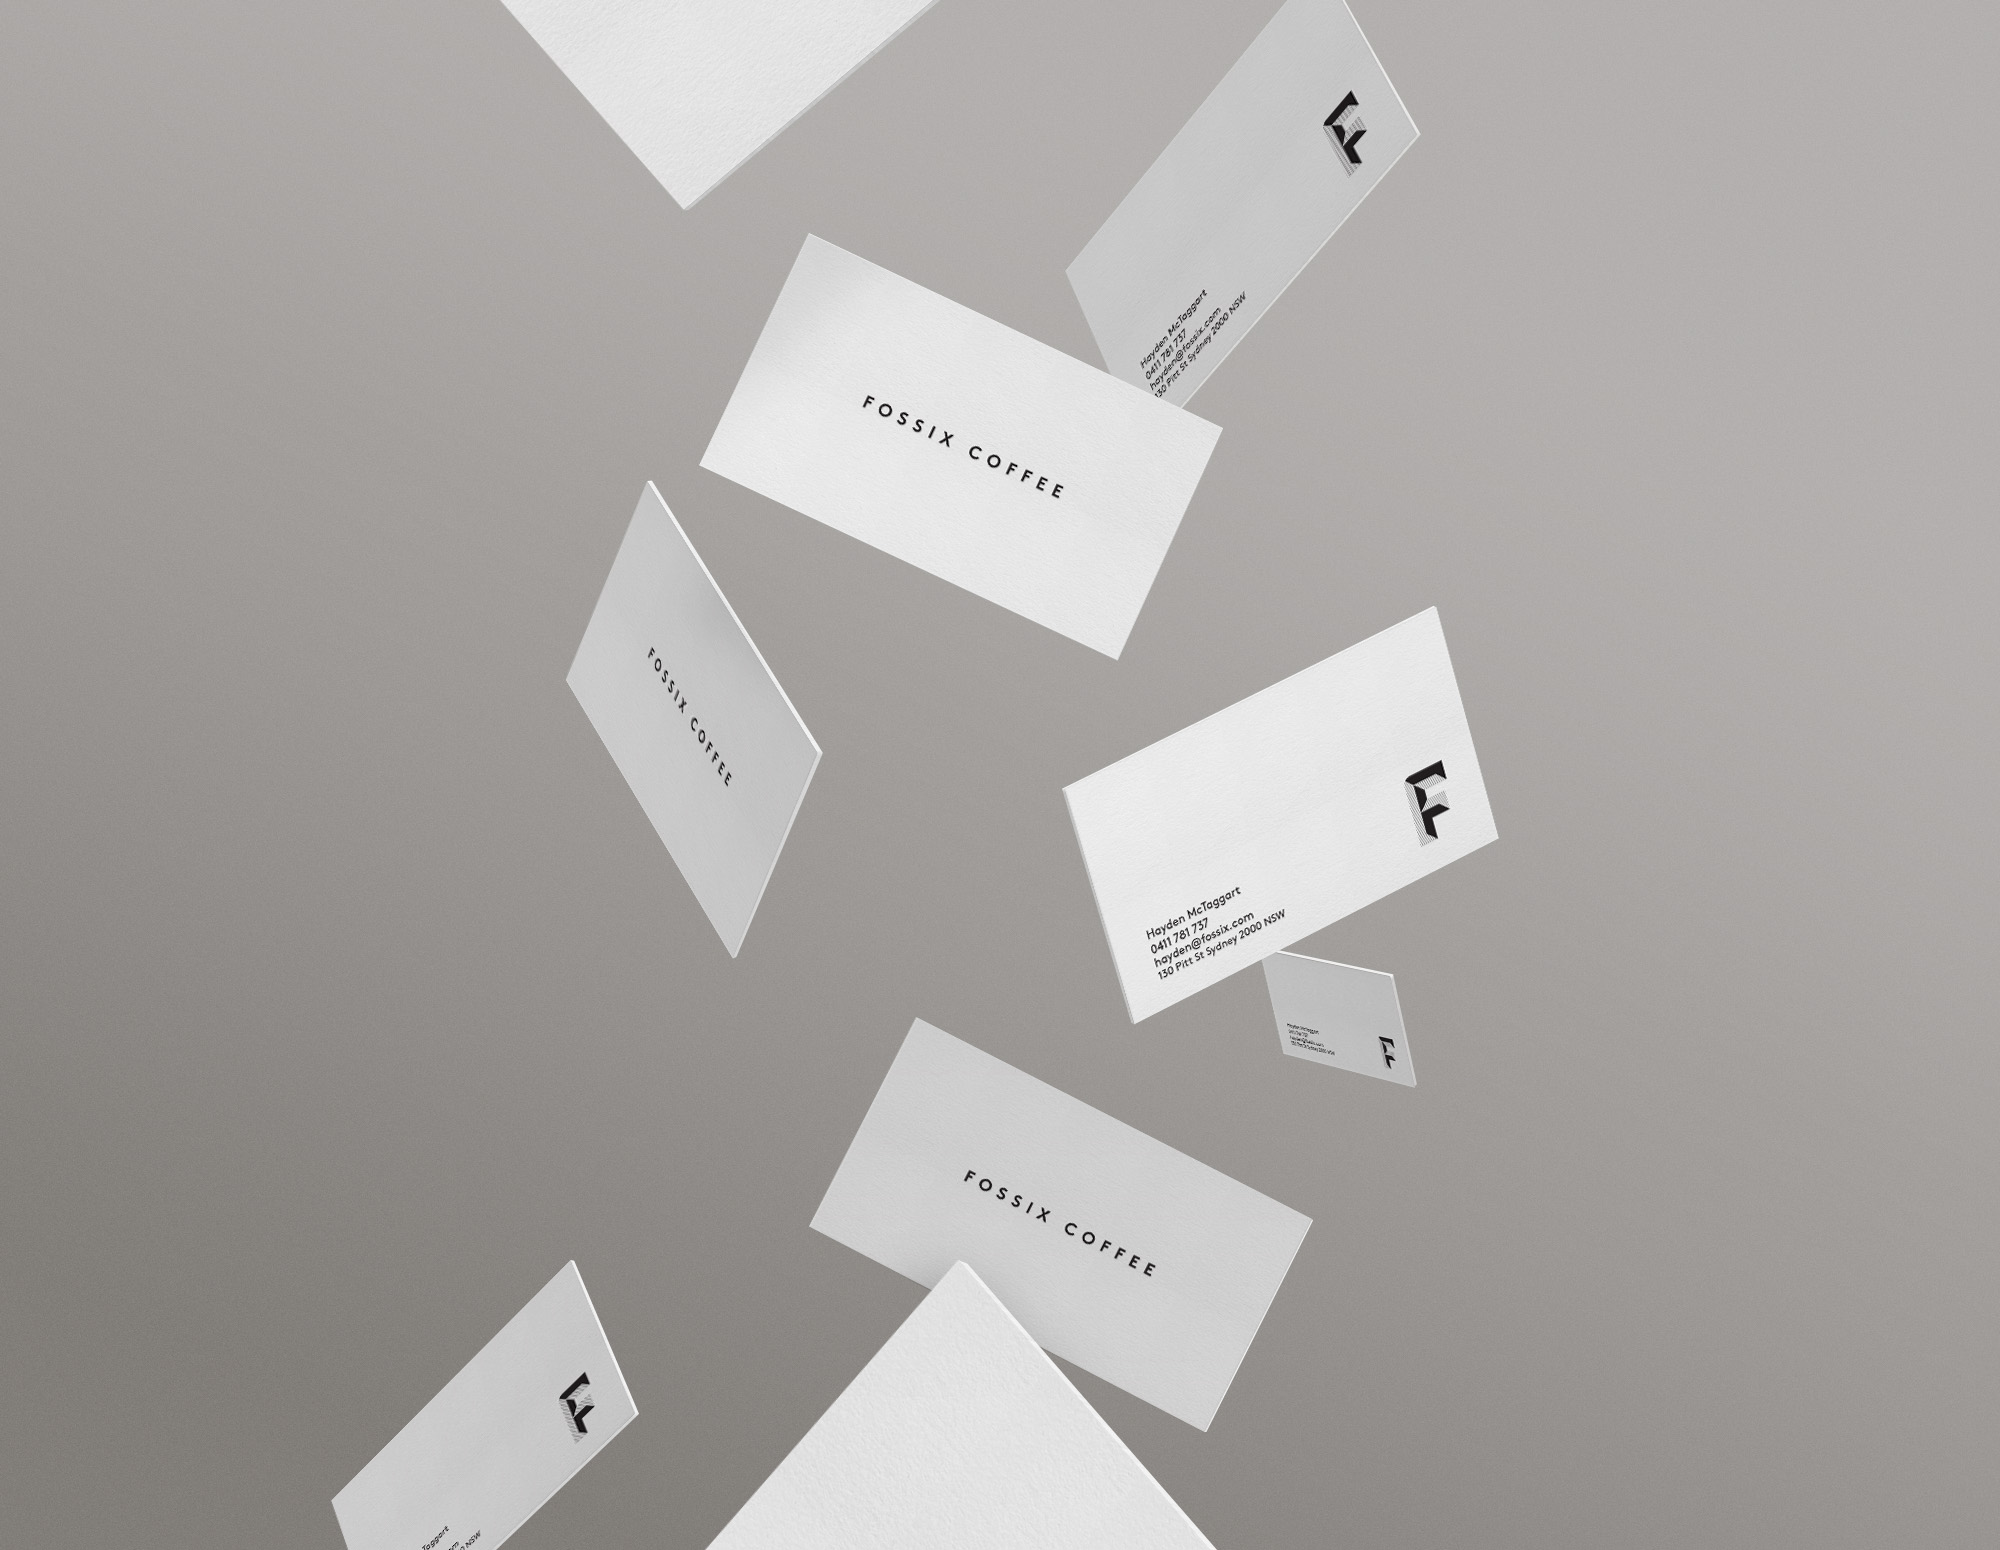 fossix business cards mockups.jpg